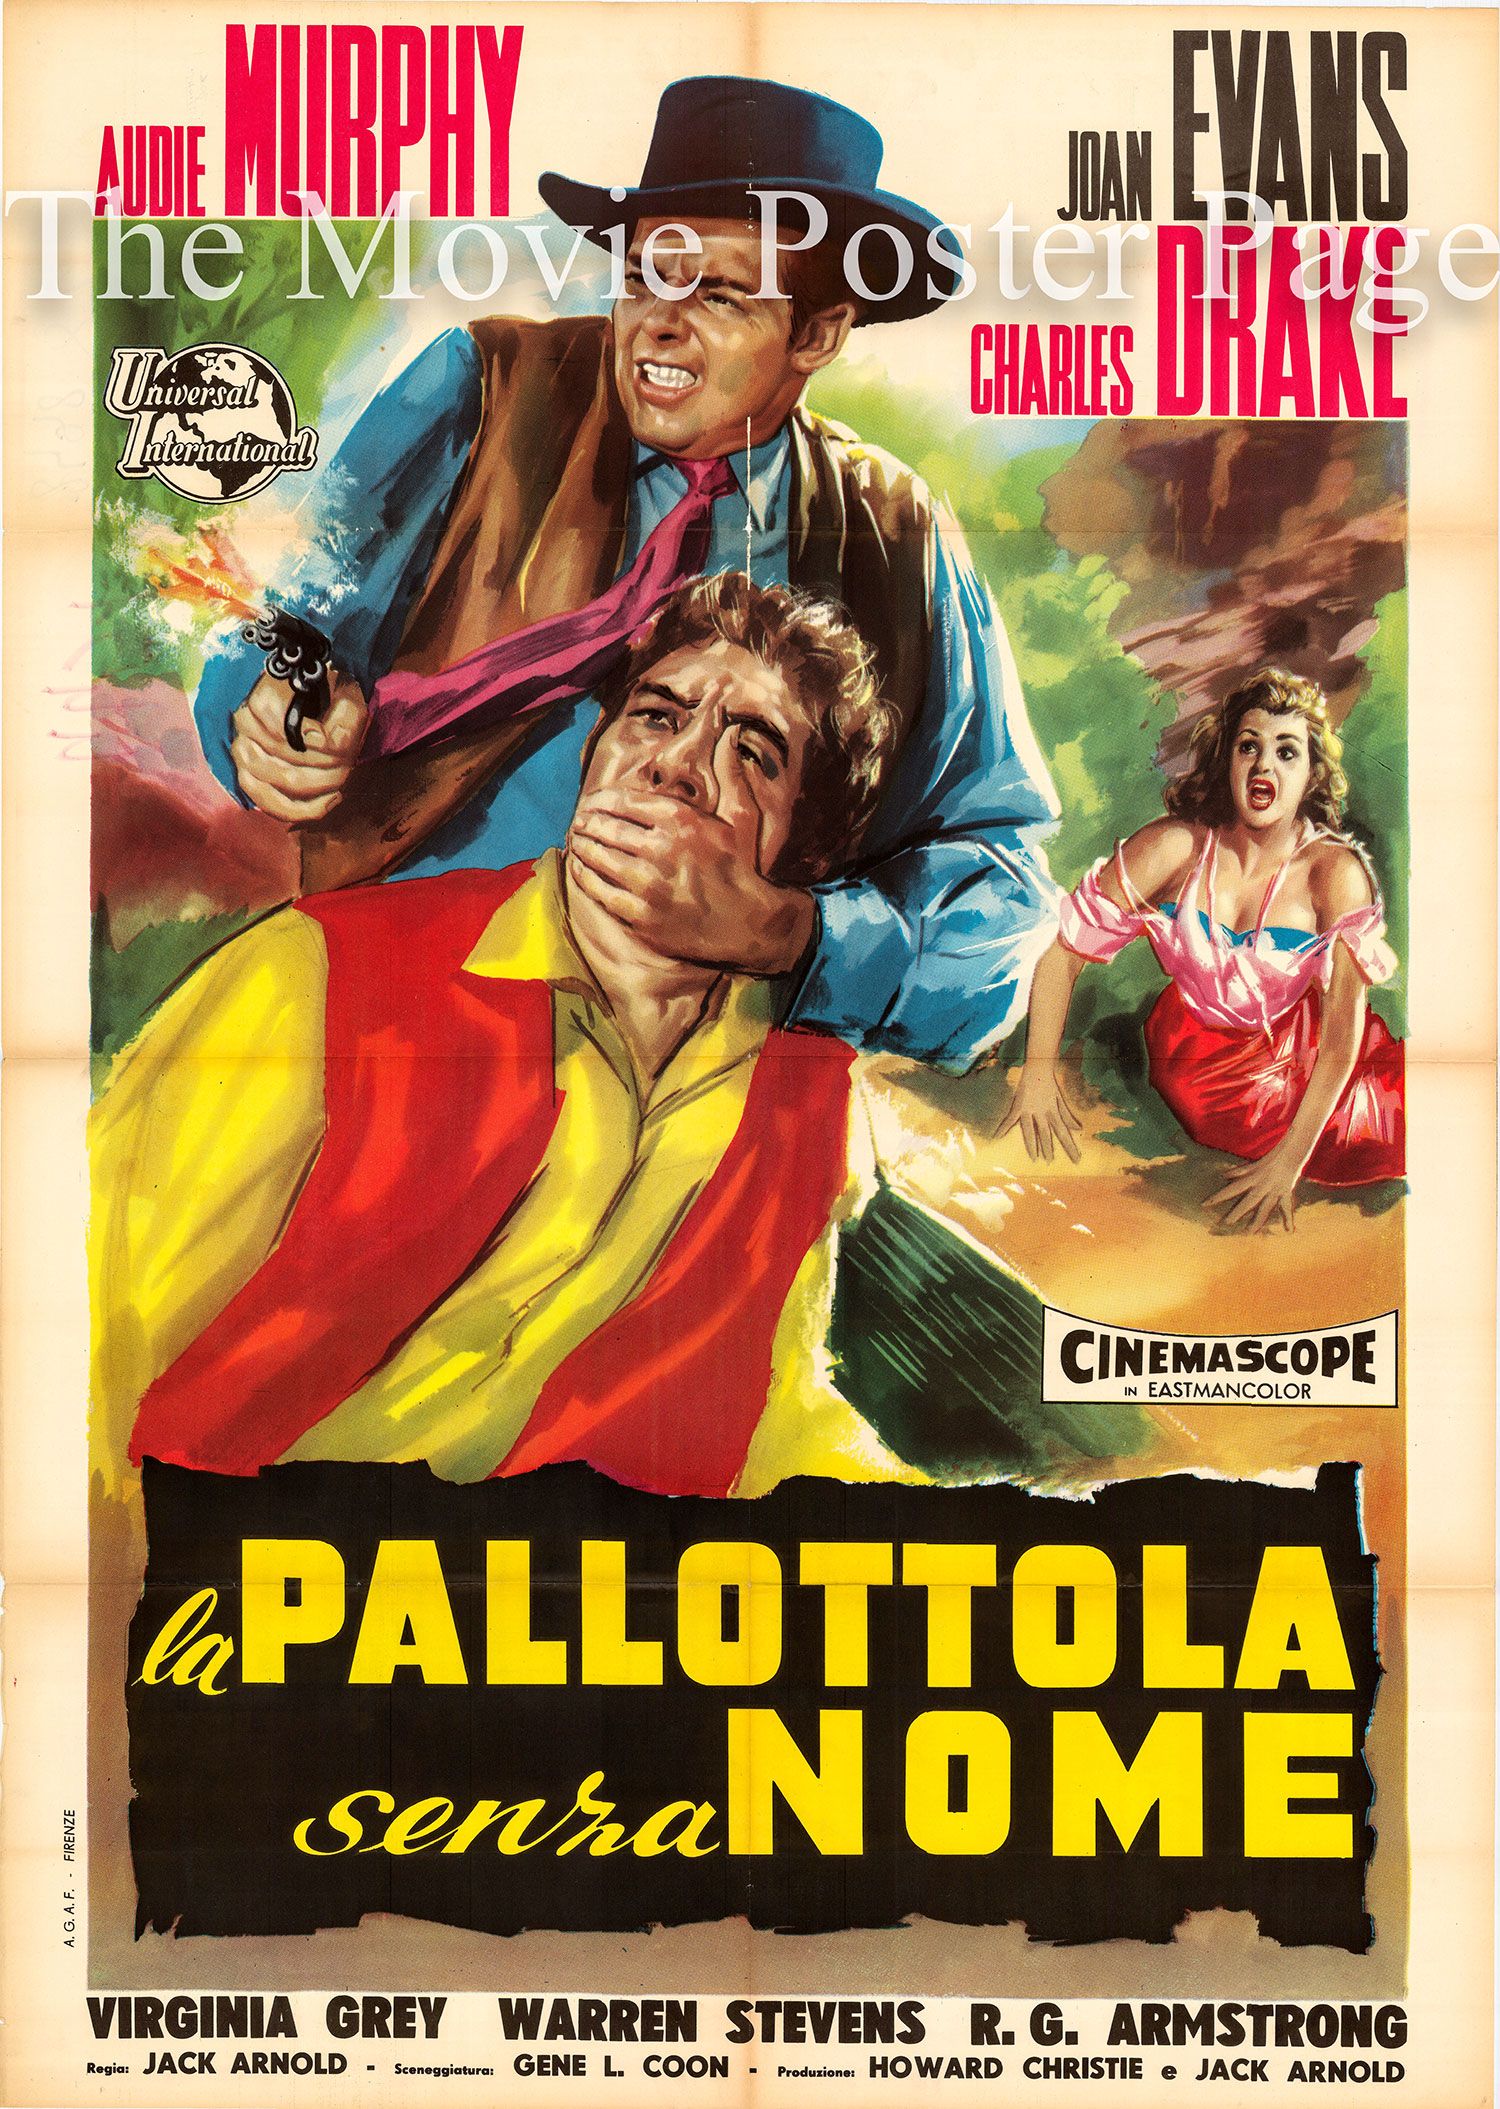 Pictured is an Italian two-sheet poster for the 1958 Jack Arnold film No Name of the Bullet starring Audie Murphy as John Gant.